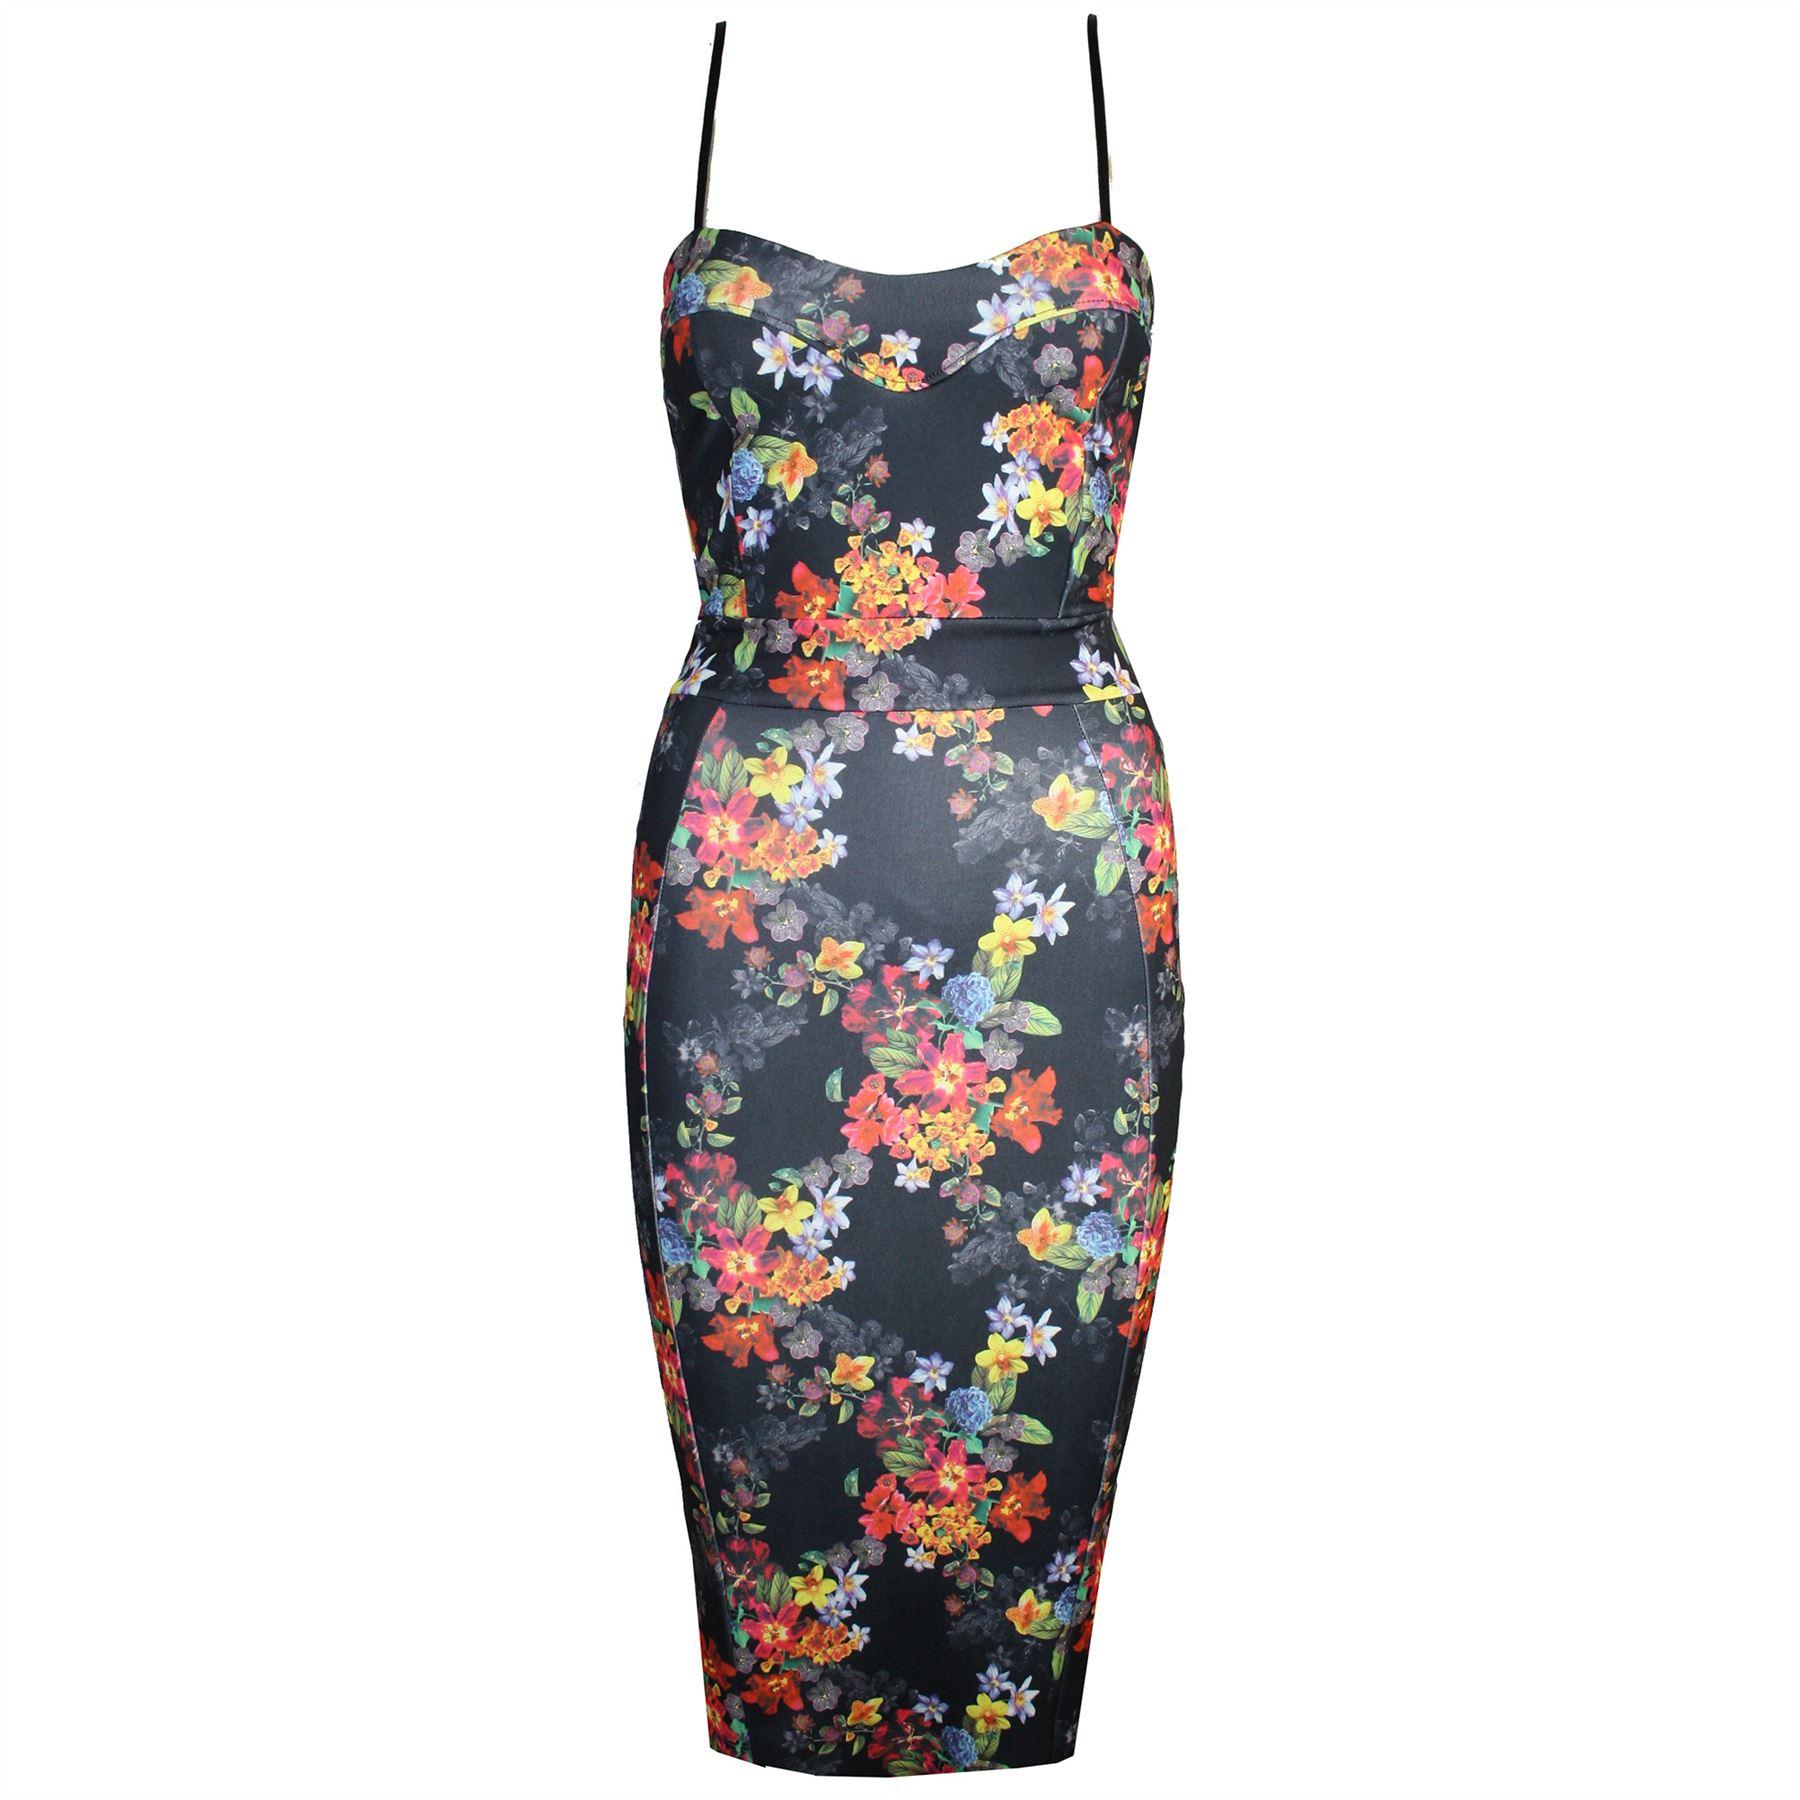 Womens-Ladies-Fitted-Split-Celebrity-Floral-Strappy-Camisole-